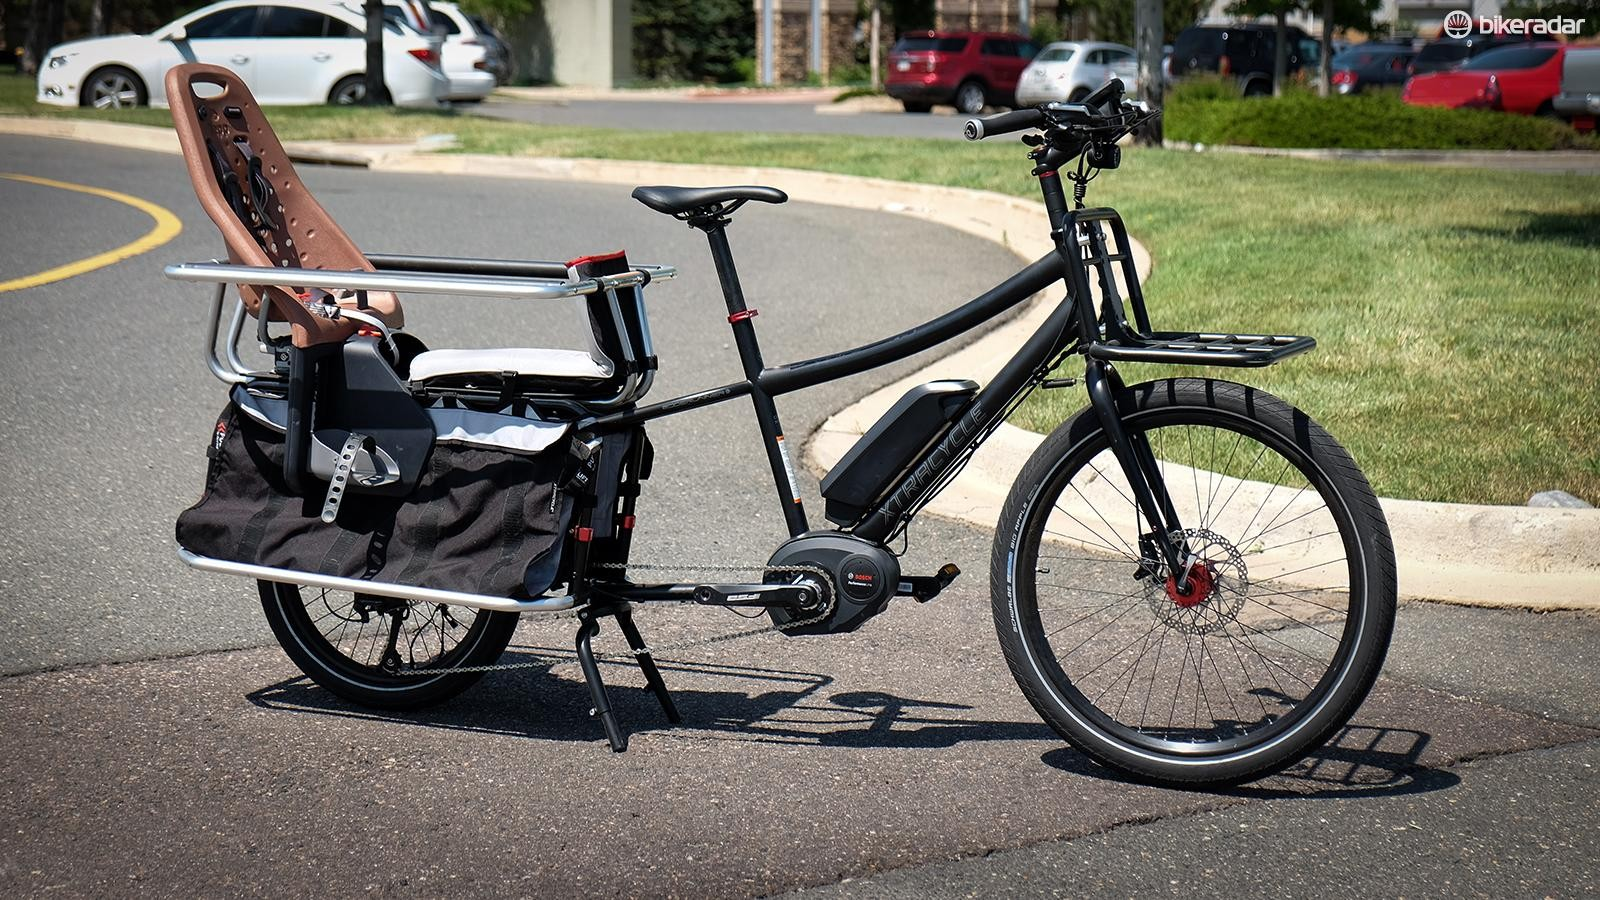 The Extracycle Edgerunner 10E